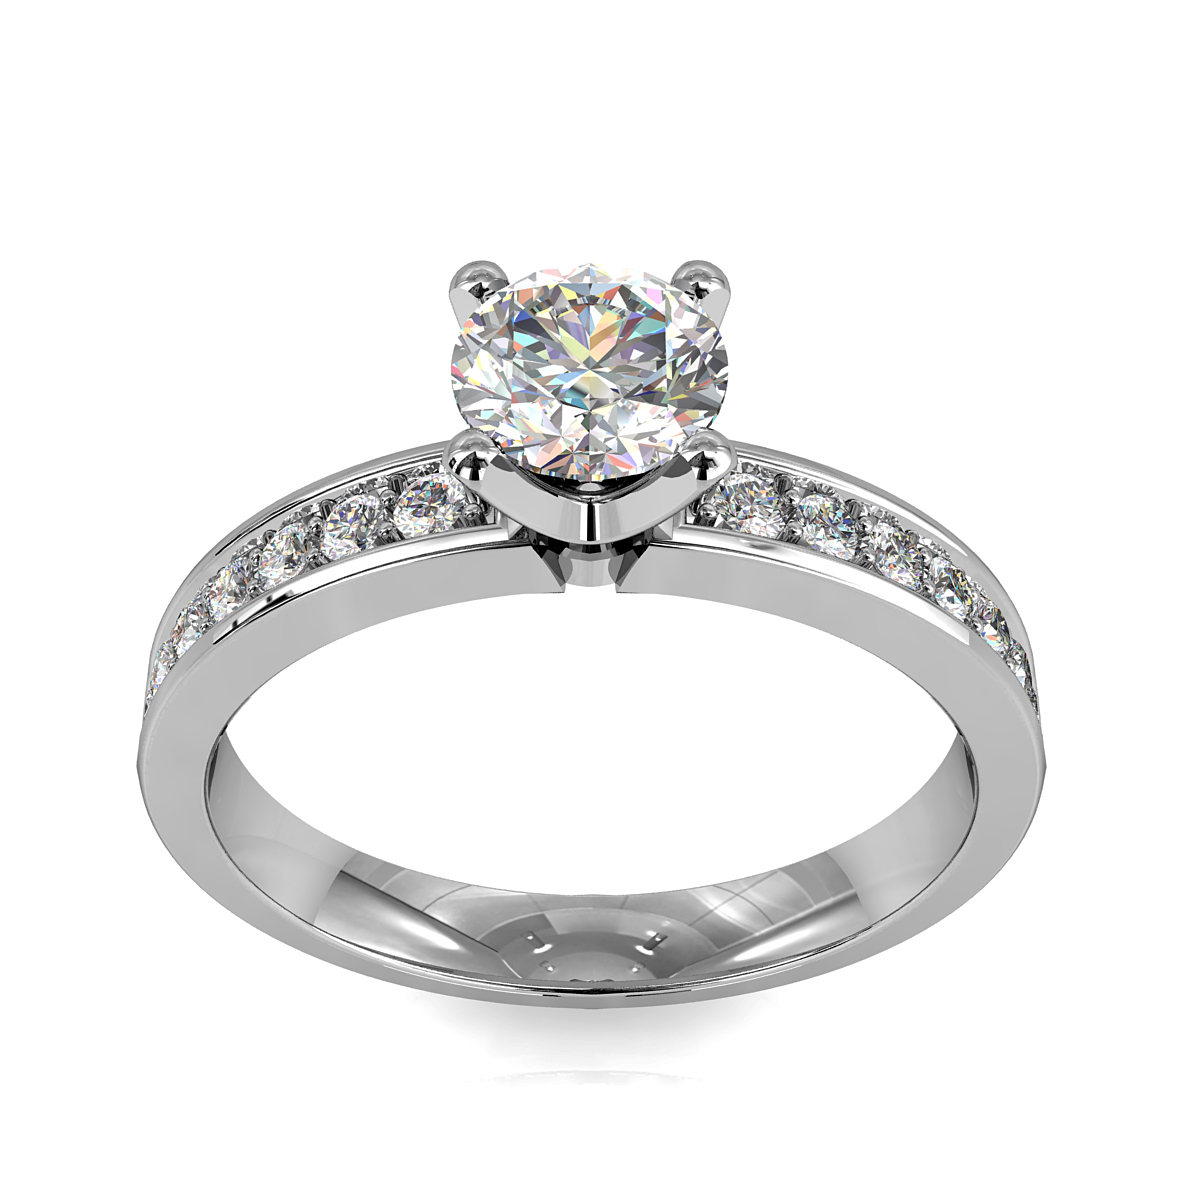 Round Brilliant Cut Solitaire Diamond Engagement Ring, 4 Button Claws Set on a Straight Bead Set Band with Classic Raised Undersetting.